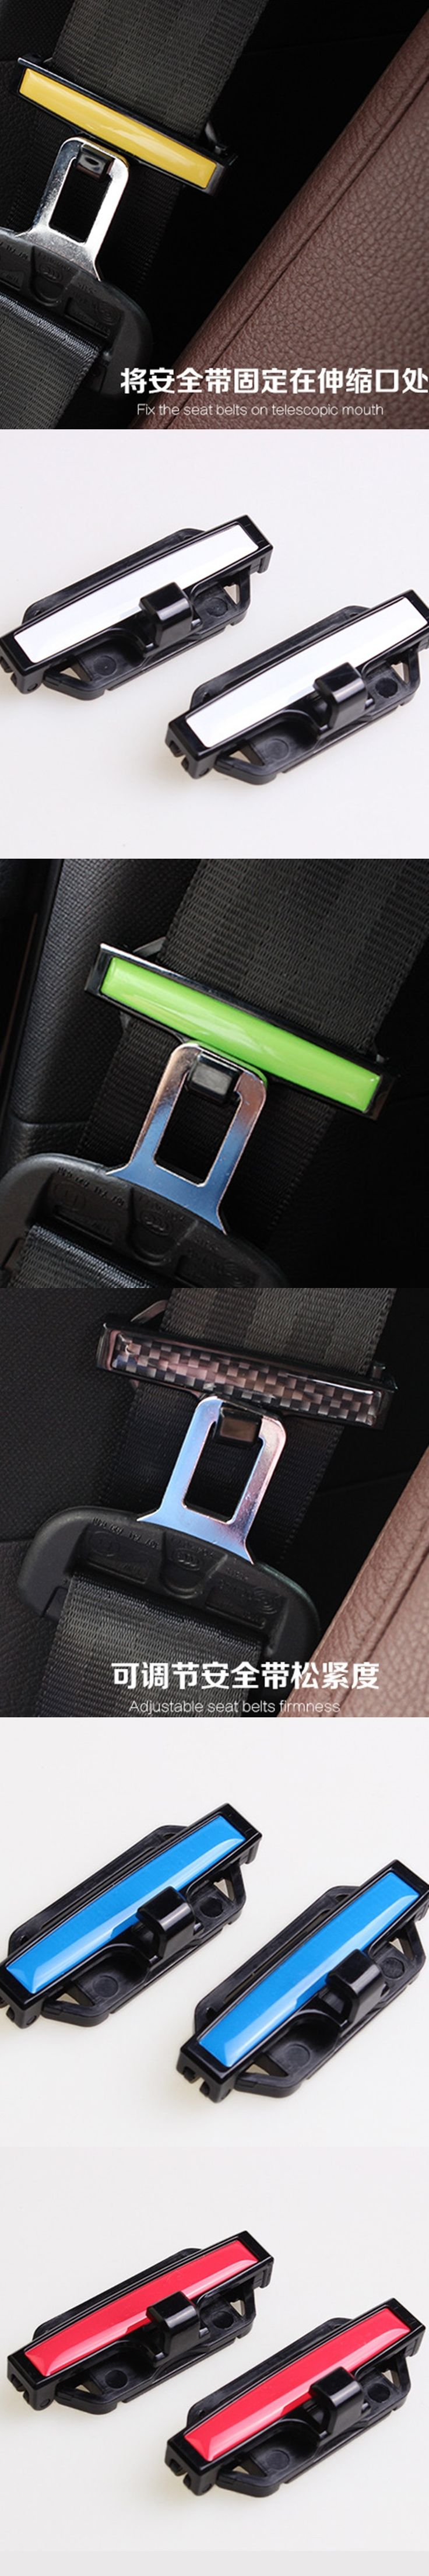 6 Colors New Arrival Car-styling 2 pcs Adjustable Car Seat Belt Locking Stopper Auto Comfort Safety Clip Extender Car styling